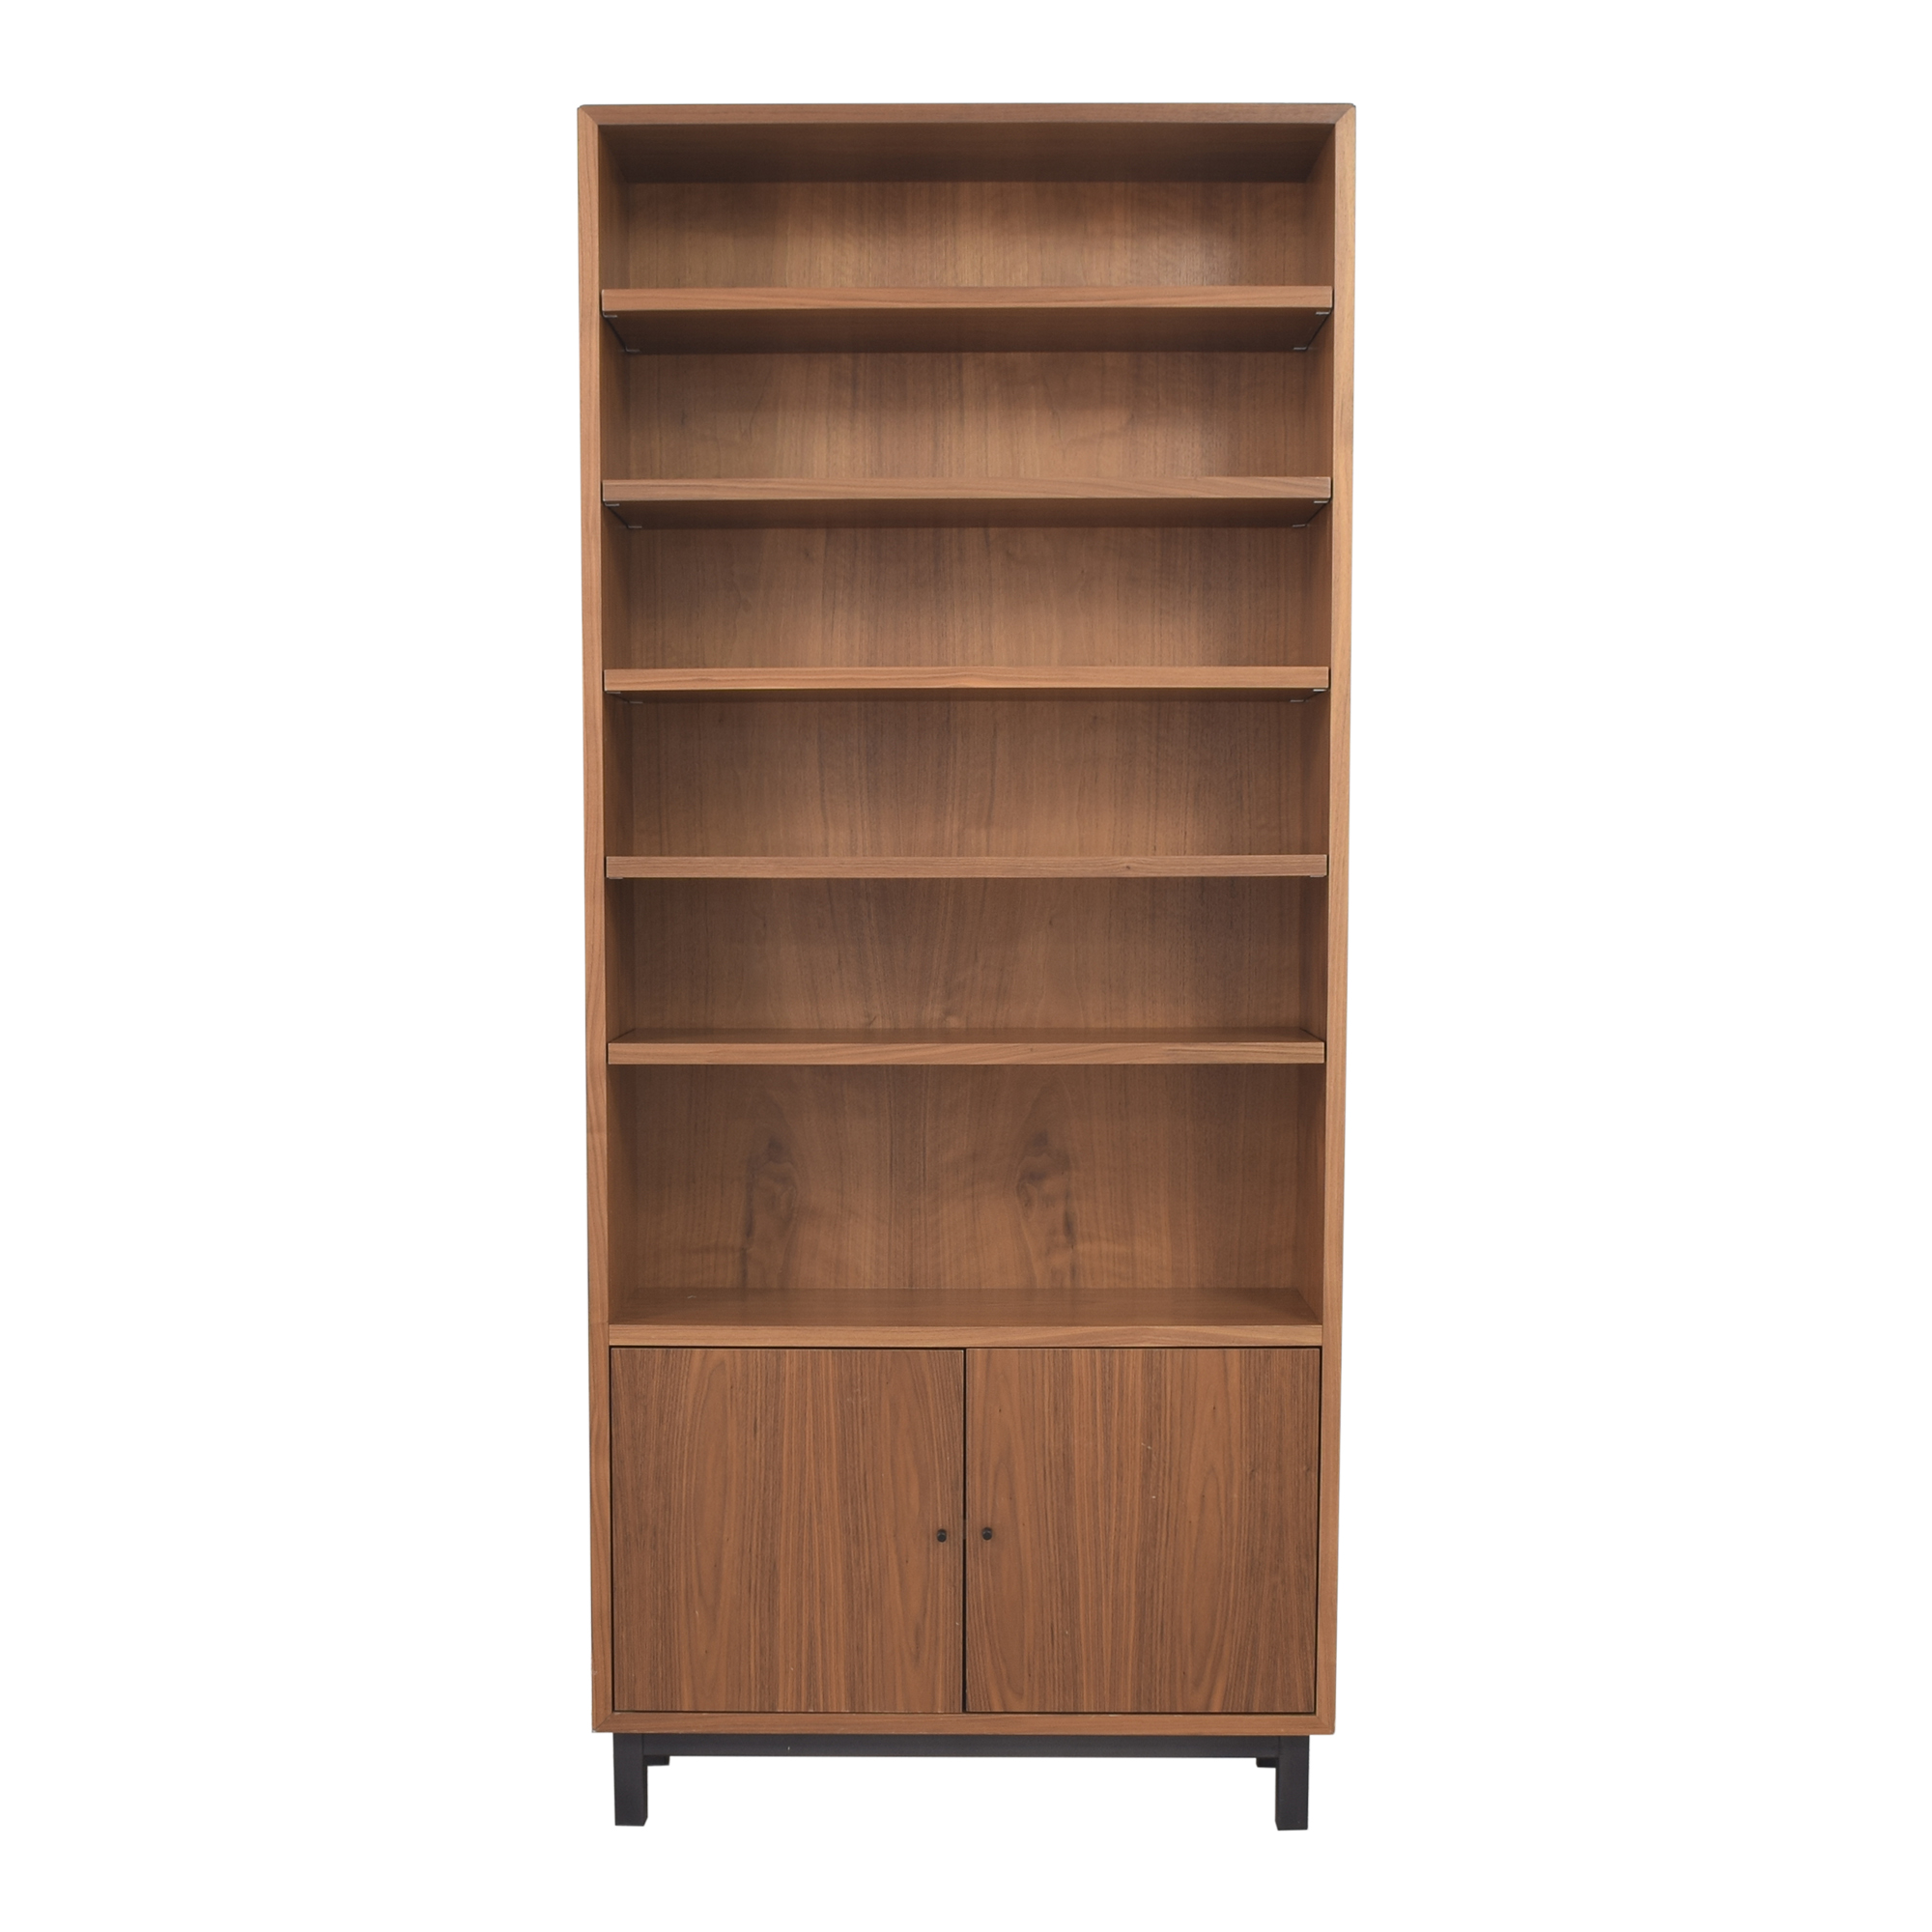 Room & Board Room & Board Copenhagen Two Door Bookcase coupon